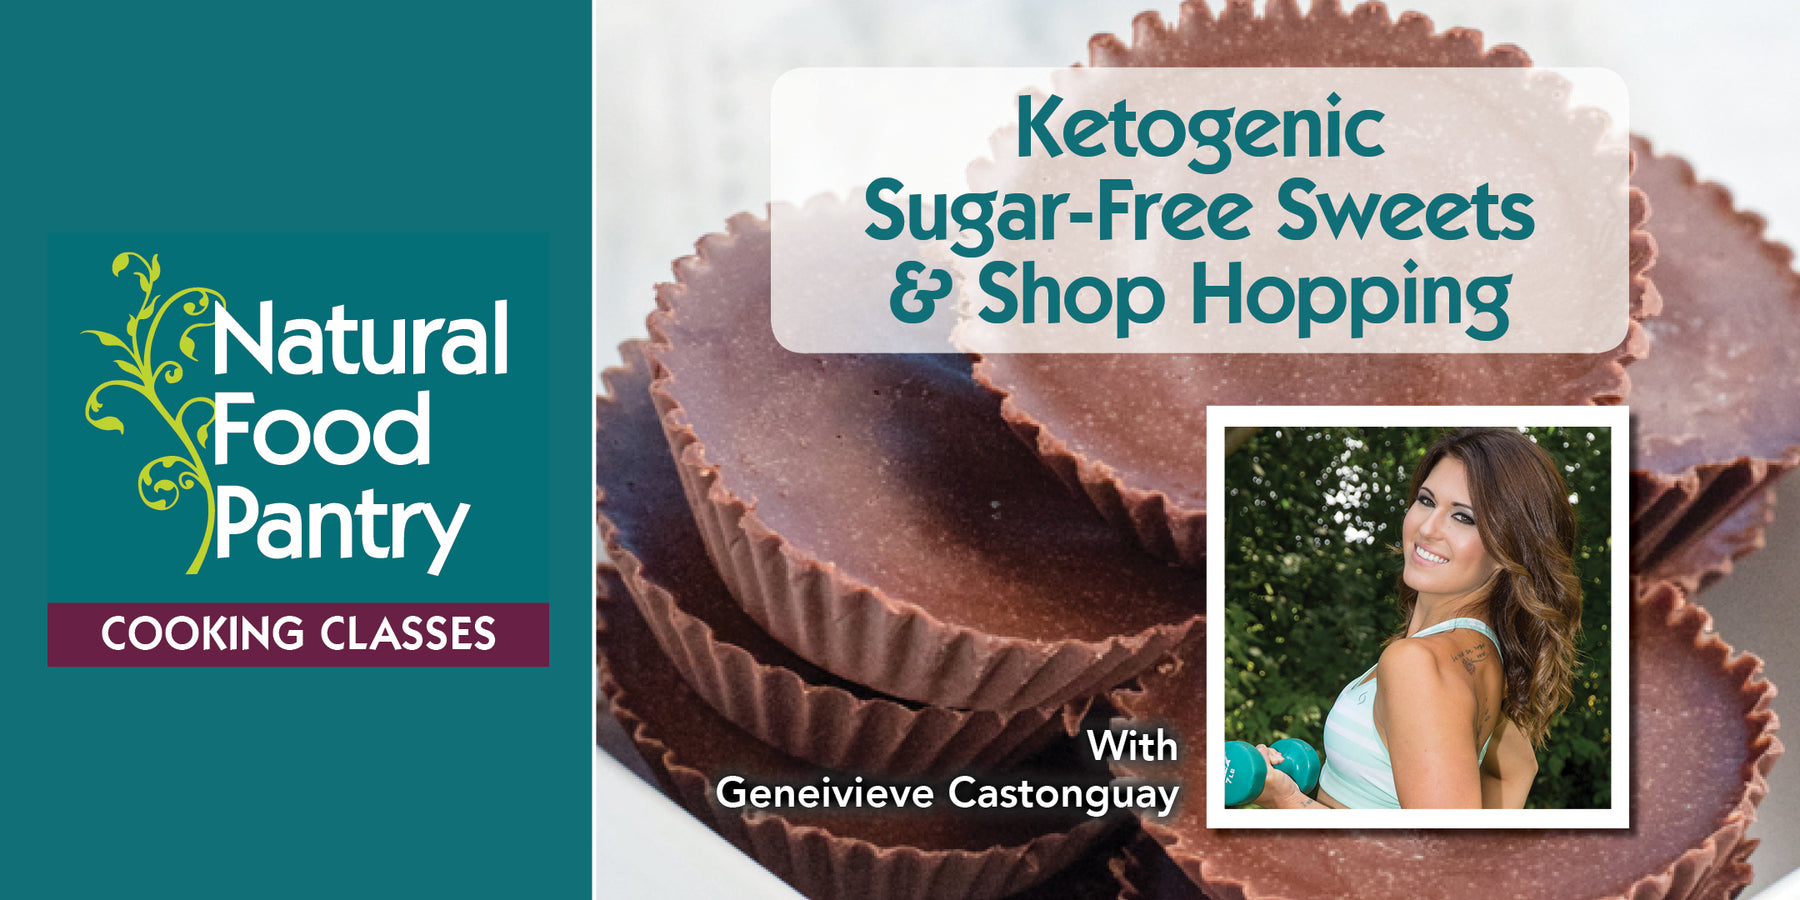 Mar 30: NFP Cooking Class: Ketogenic Sugar-Free Sweets & Shop Hopping